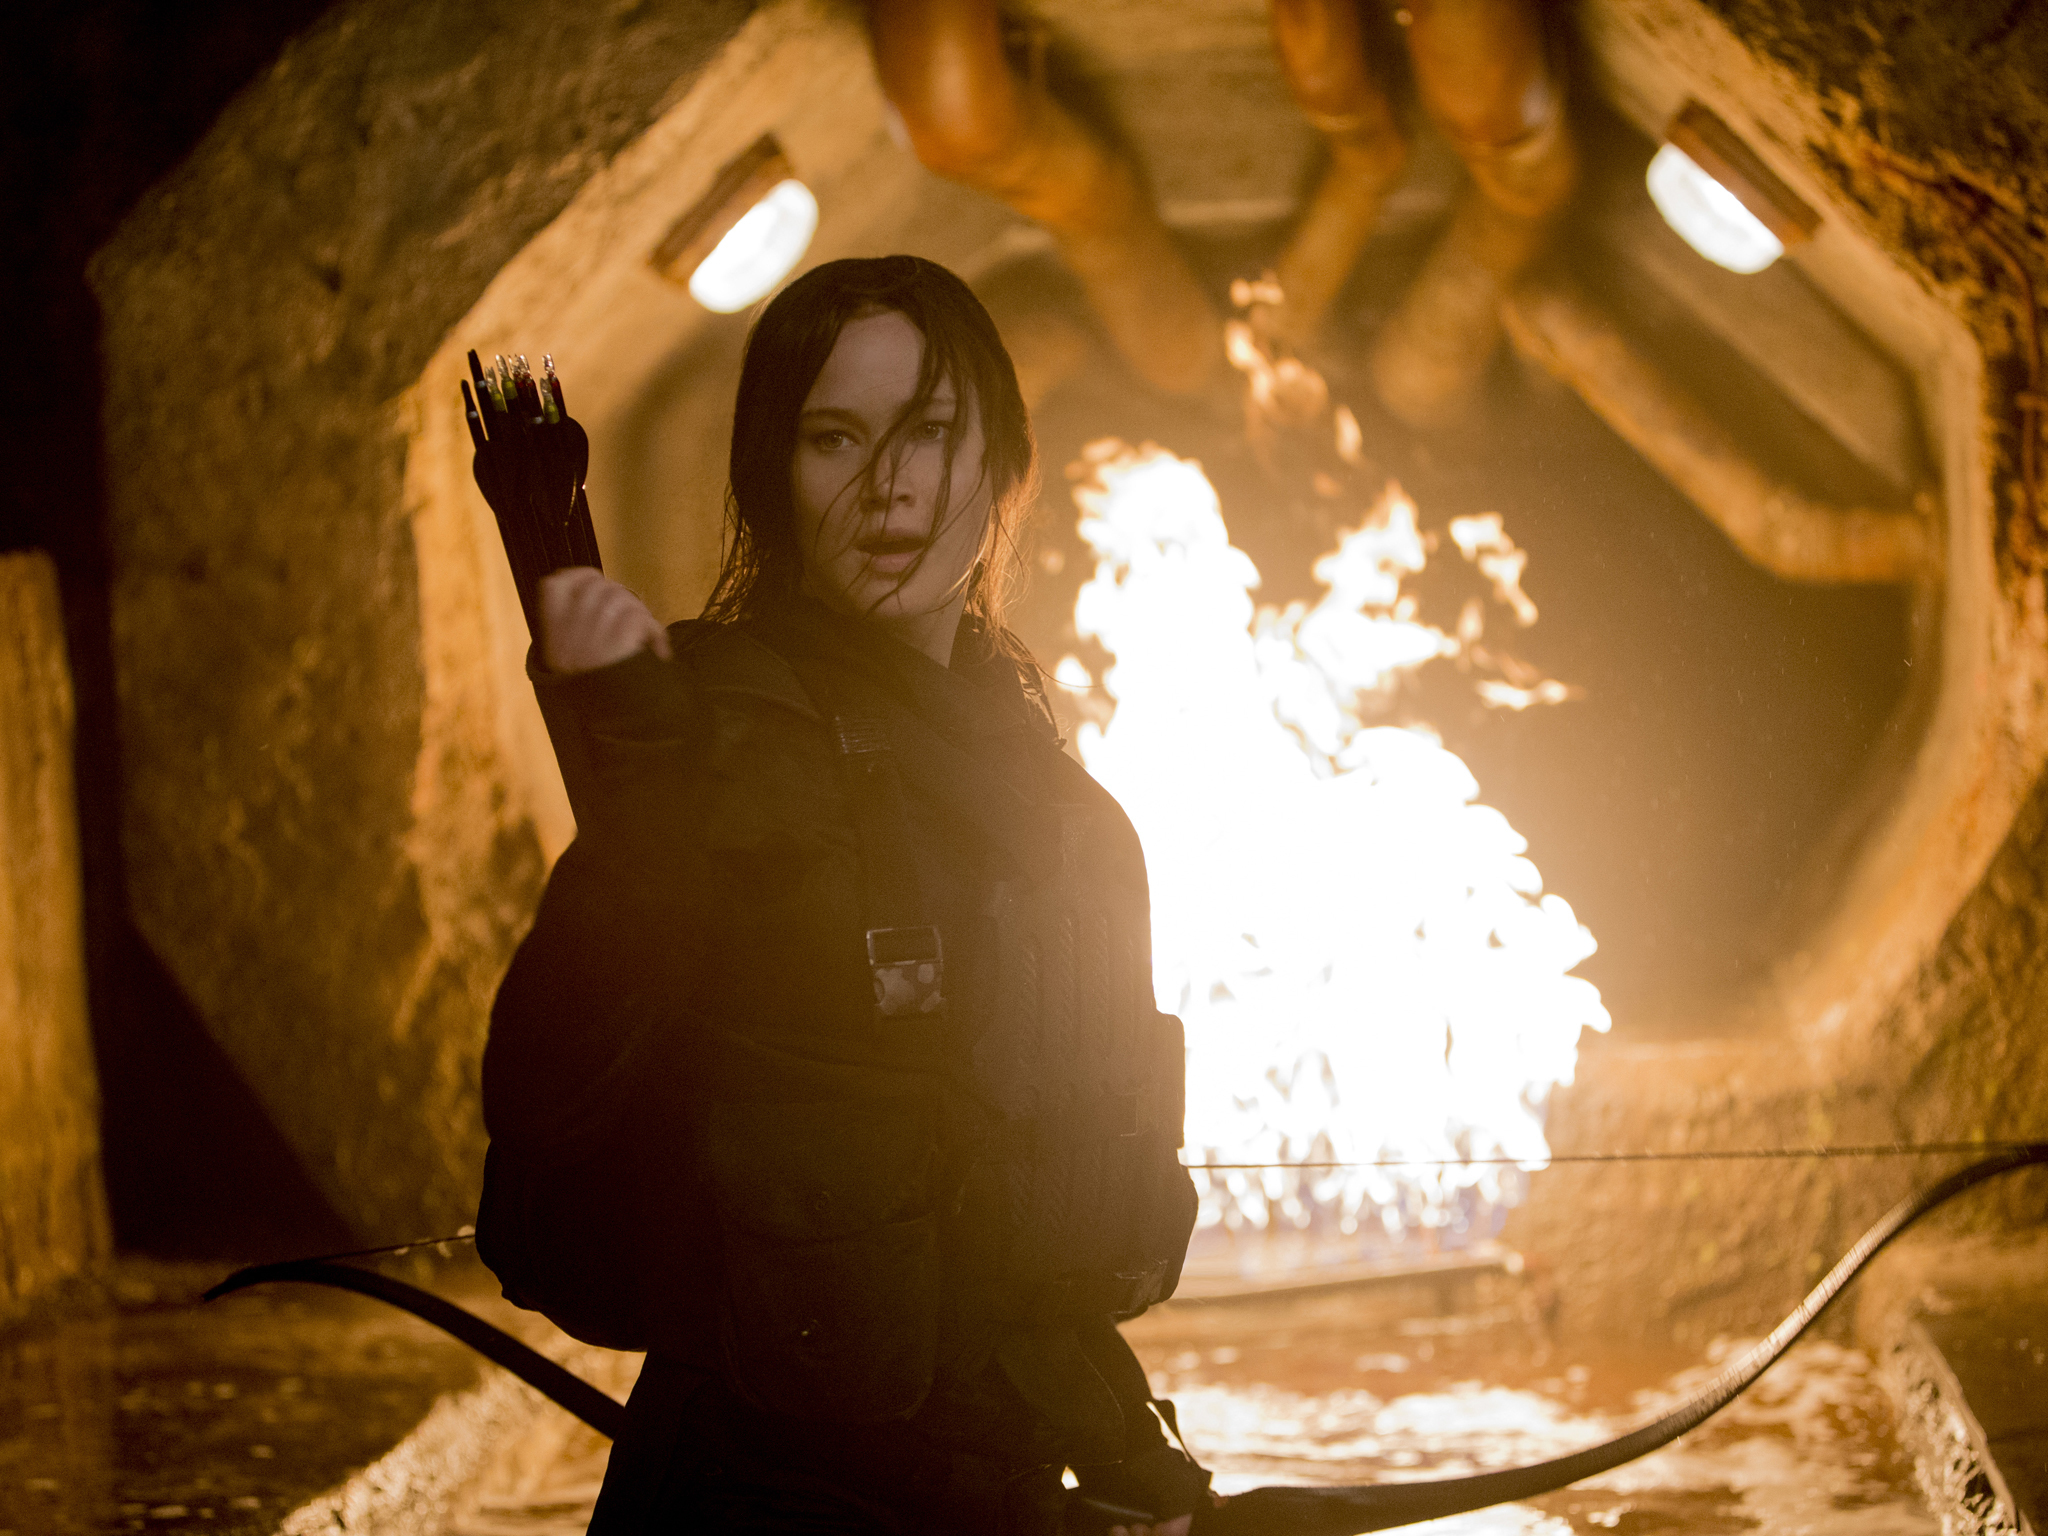 Hunger Games best bits, the tunnel scene